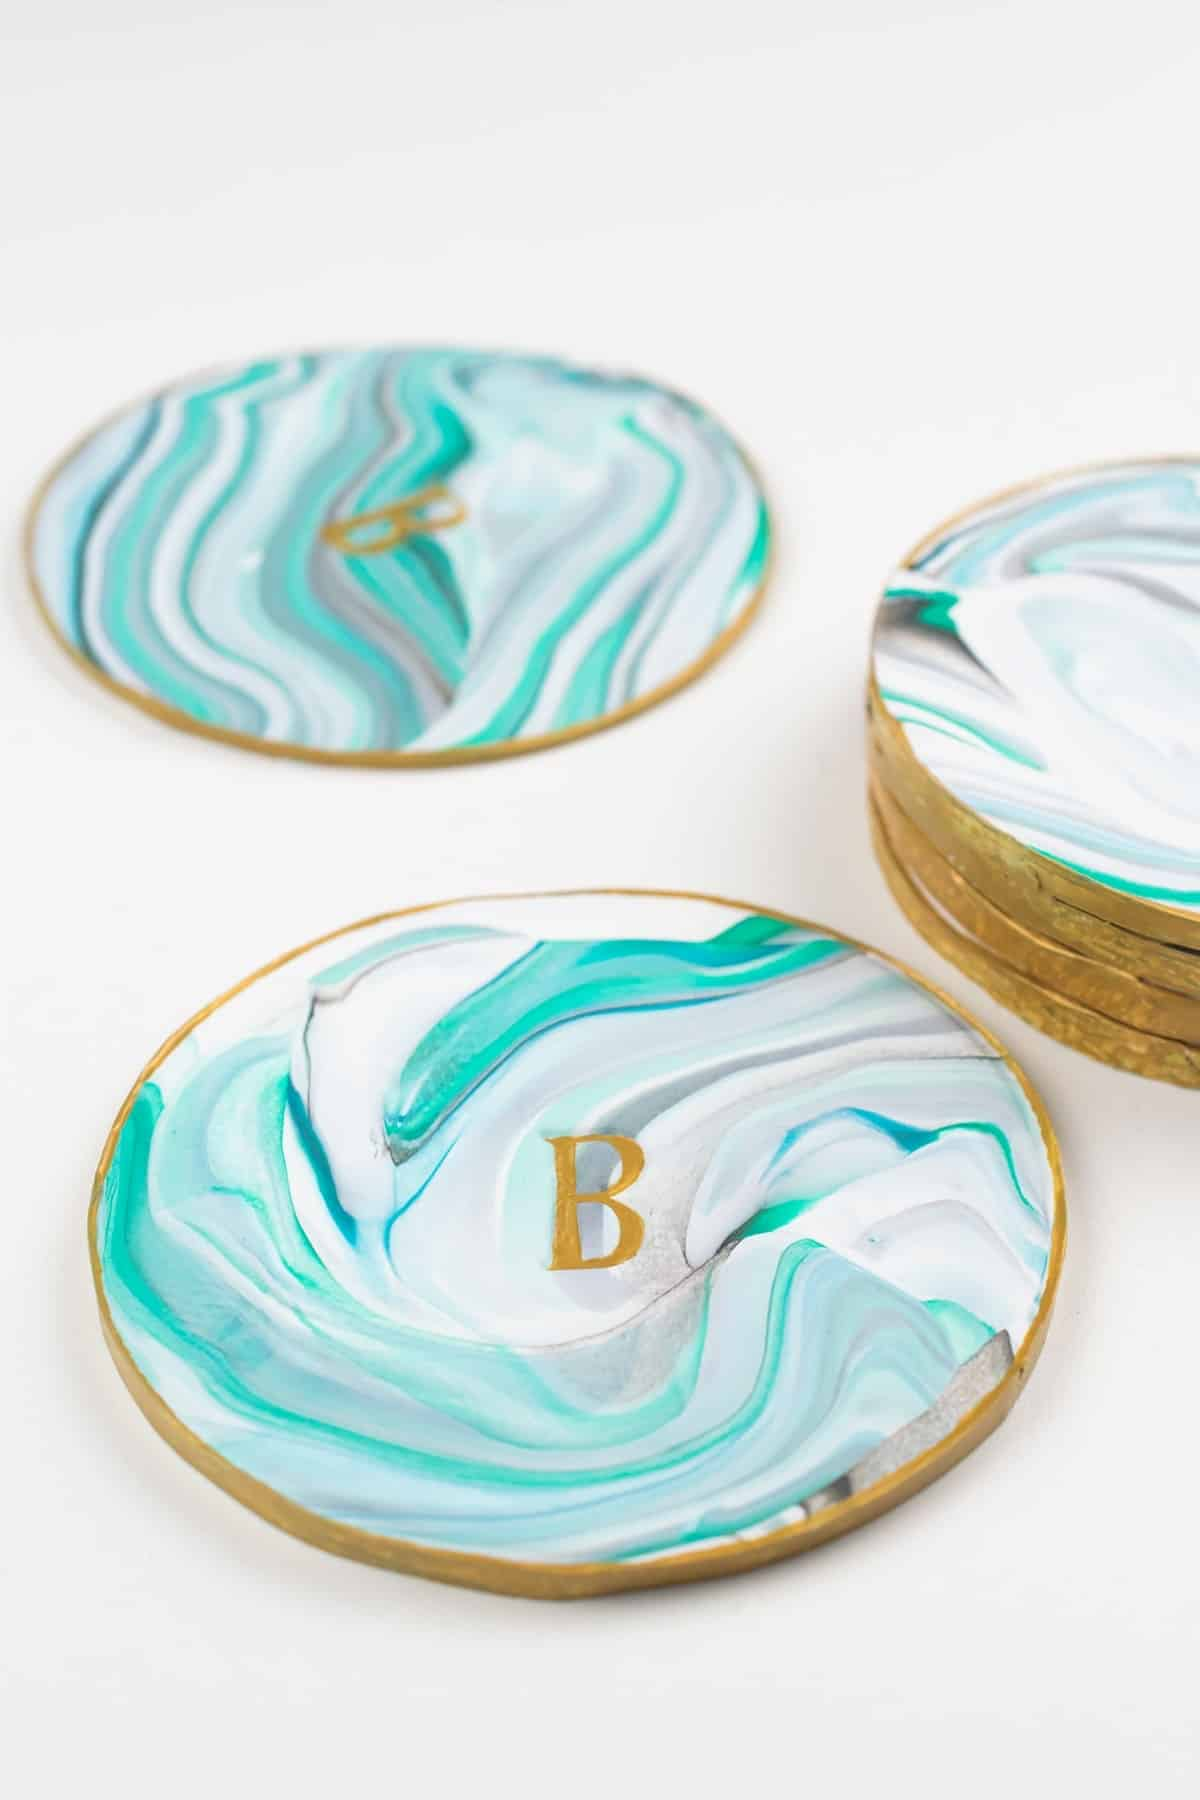 Blue and turquoise monogrammed handmade coasters with gold trim